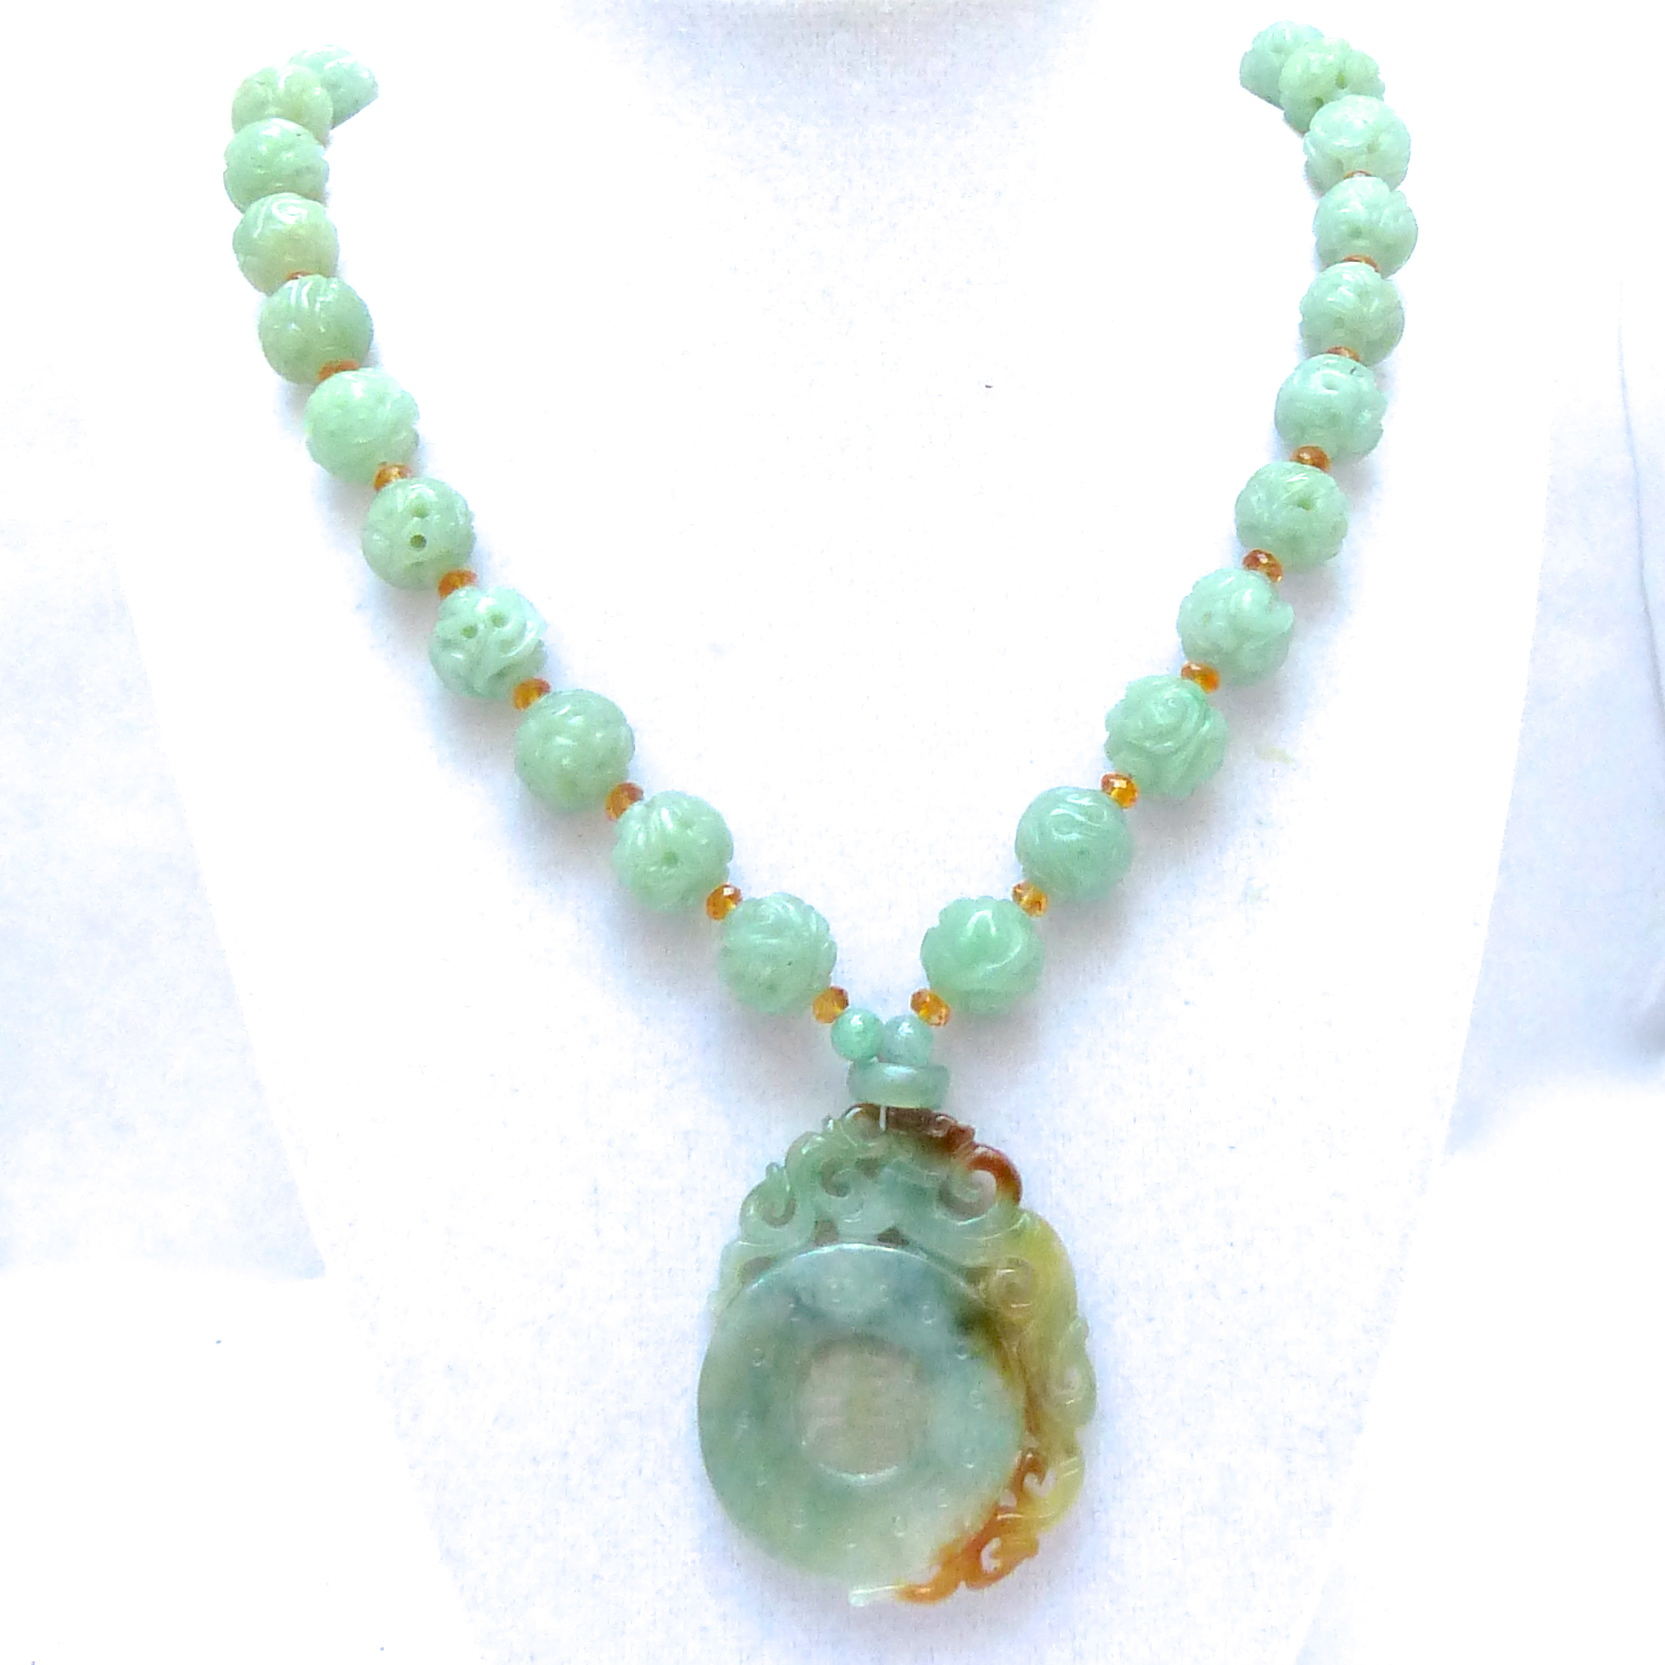 pendant false carved acquamarina jade milk giada giuspino e subsampling hand with corrado and pendente images milky upscale aquamarine prenite prehnite scale crop